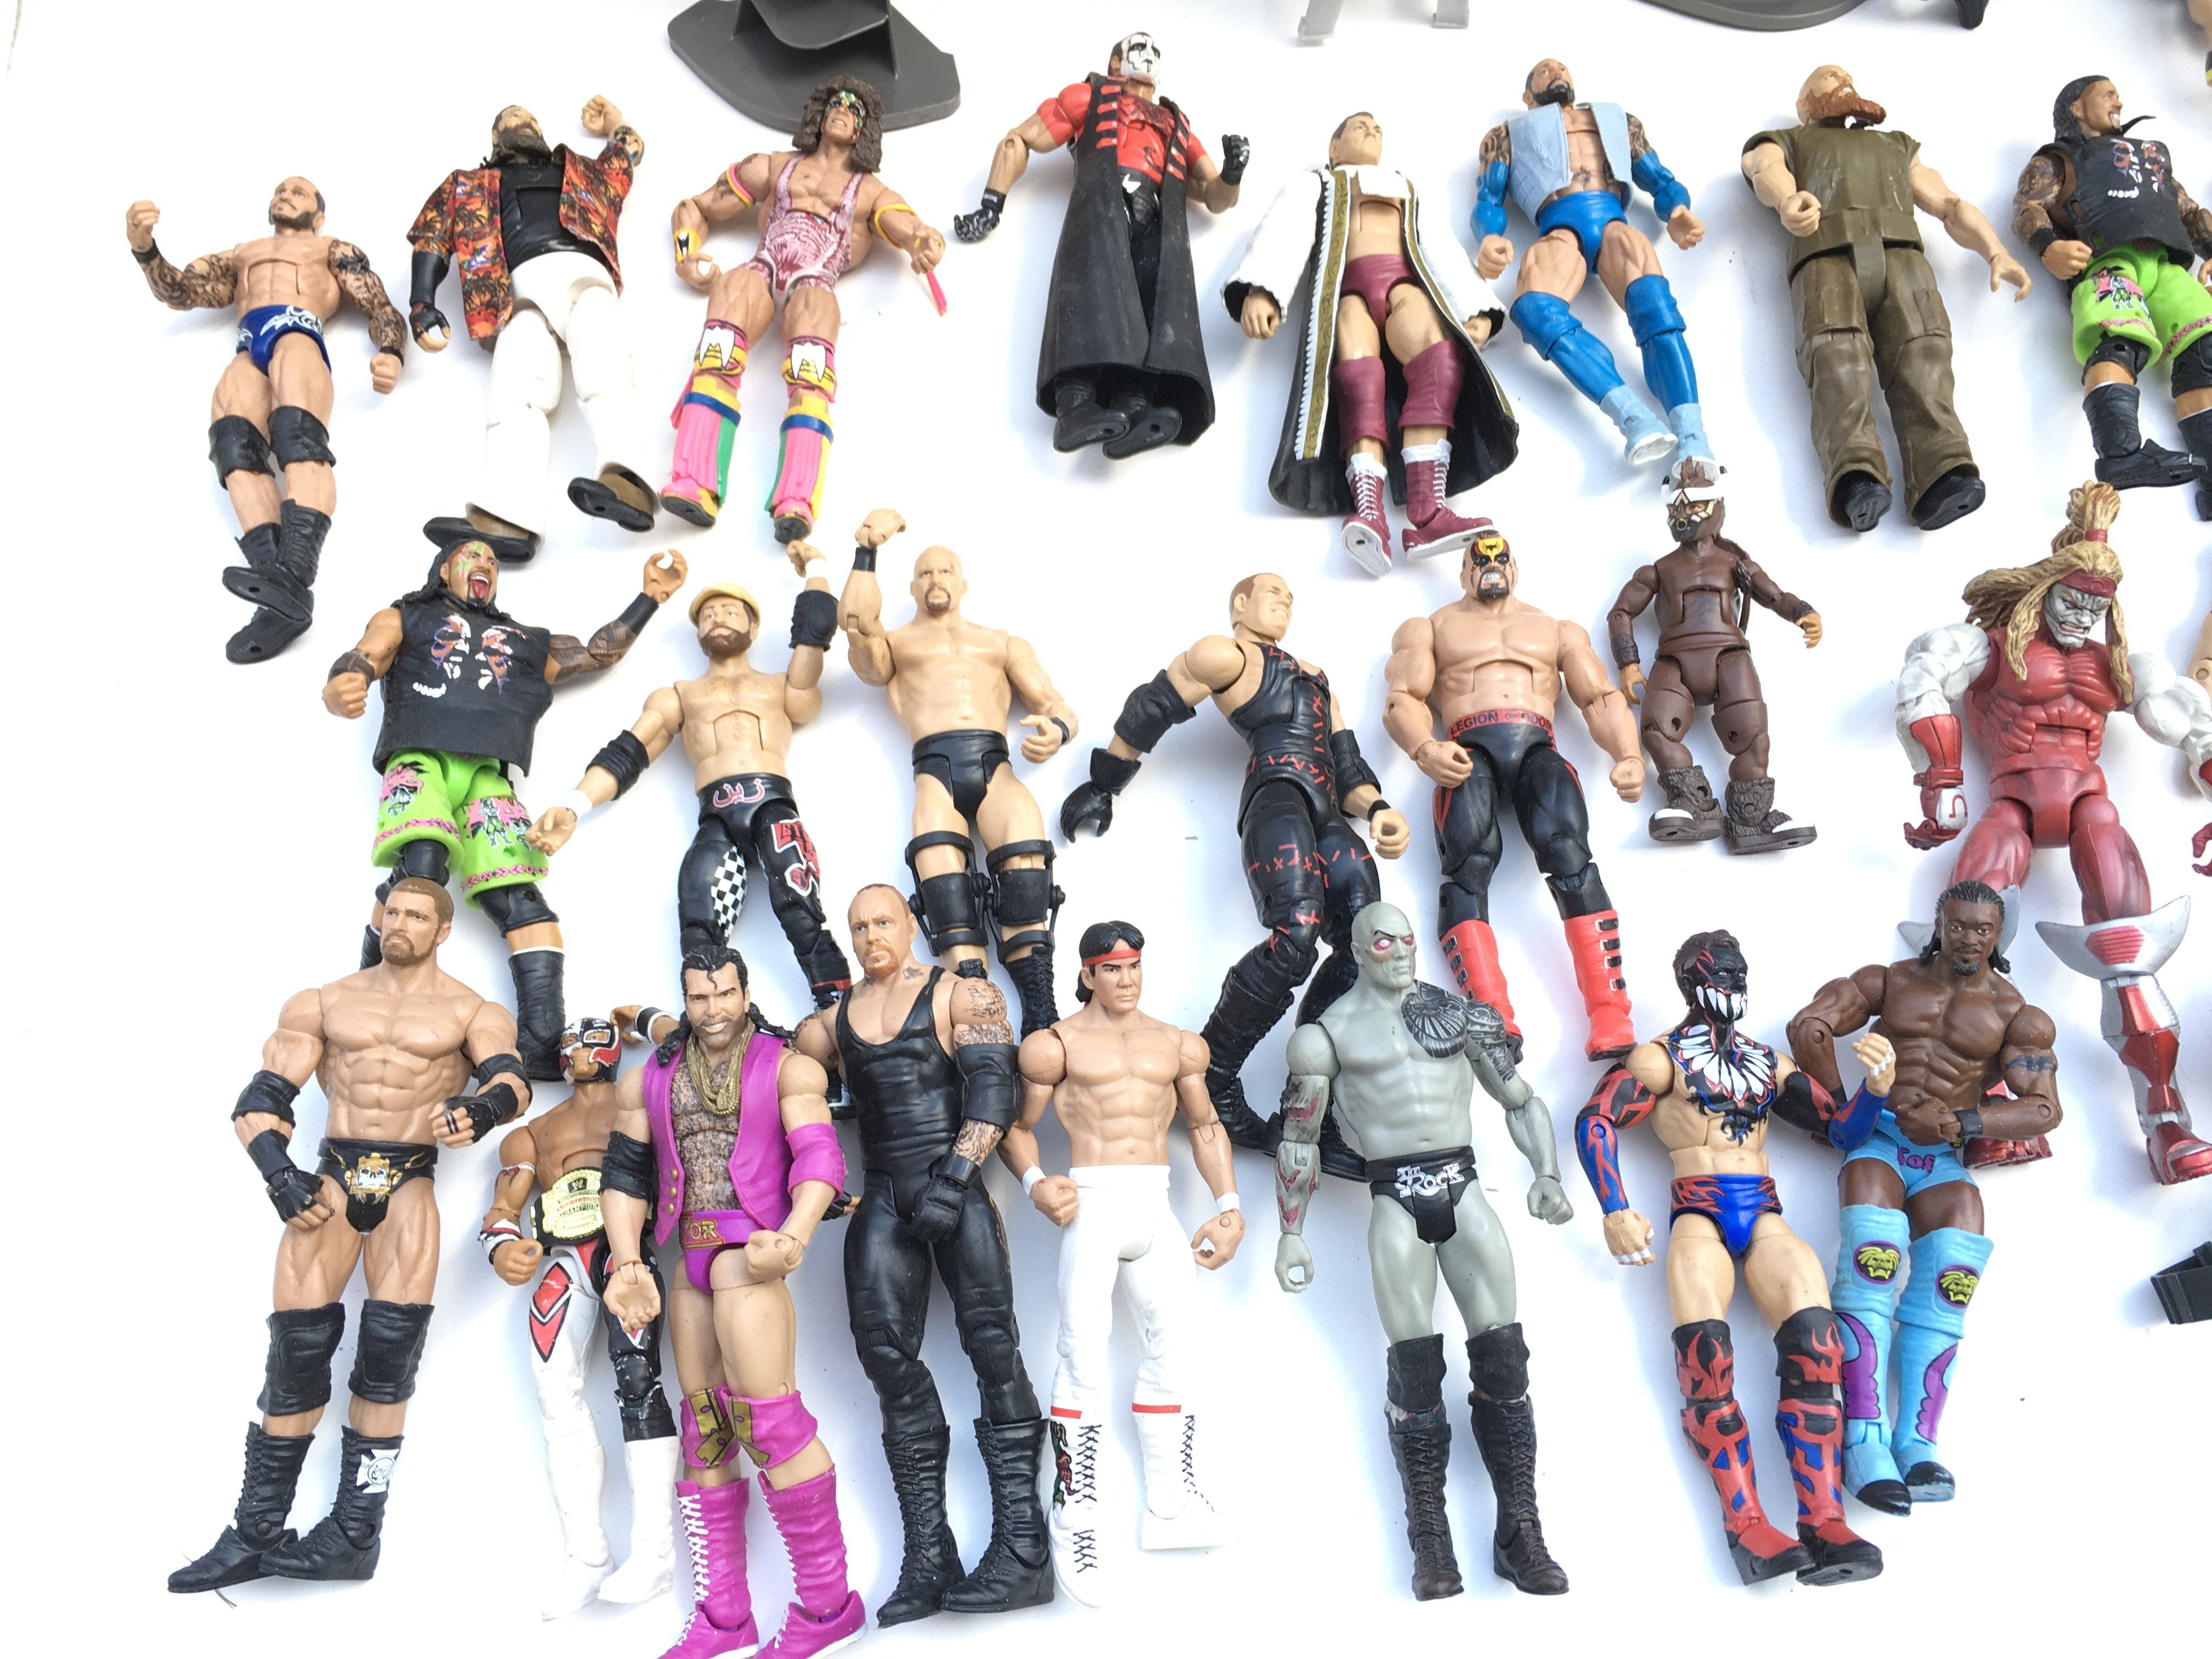 Large collection of WWE wrestling figures. - Image 2 of 3